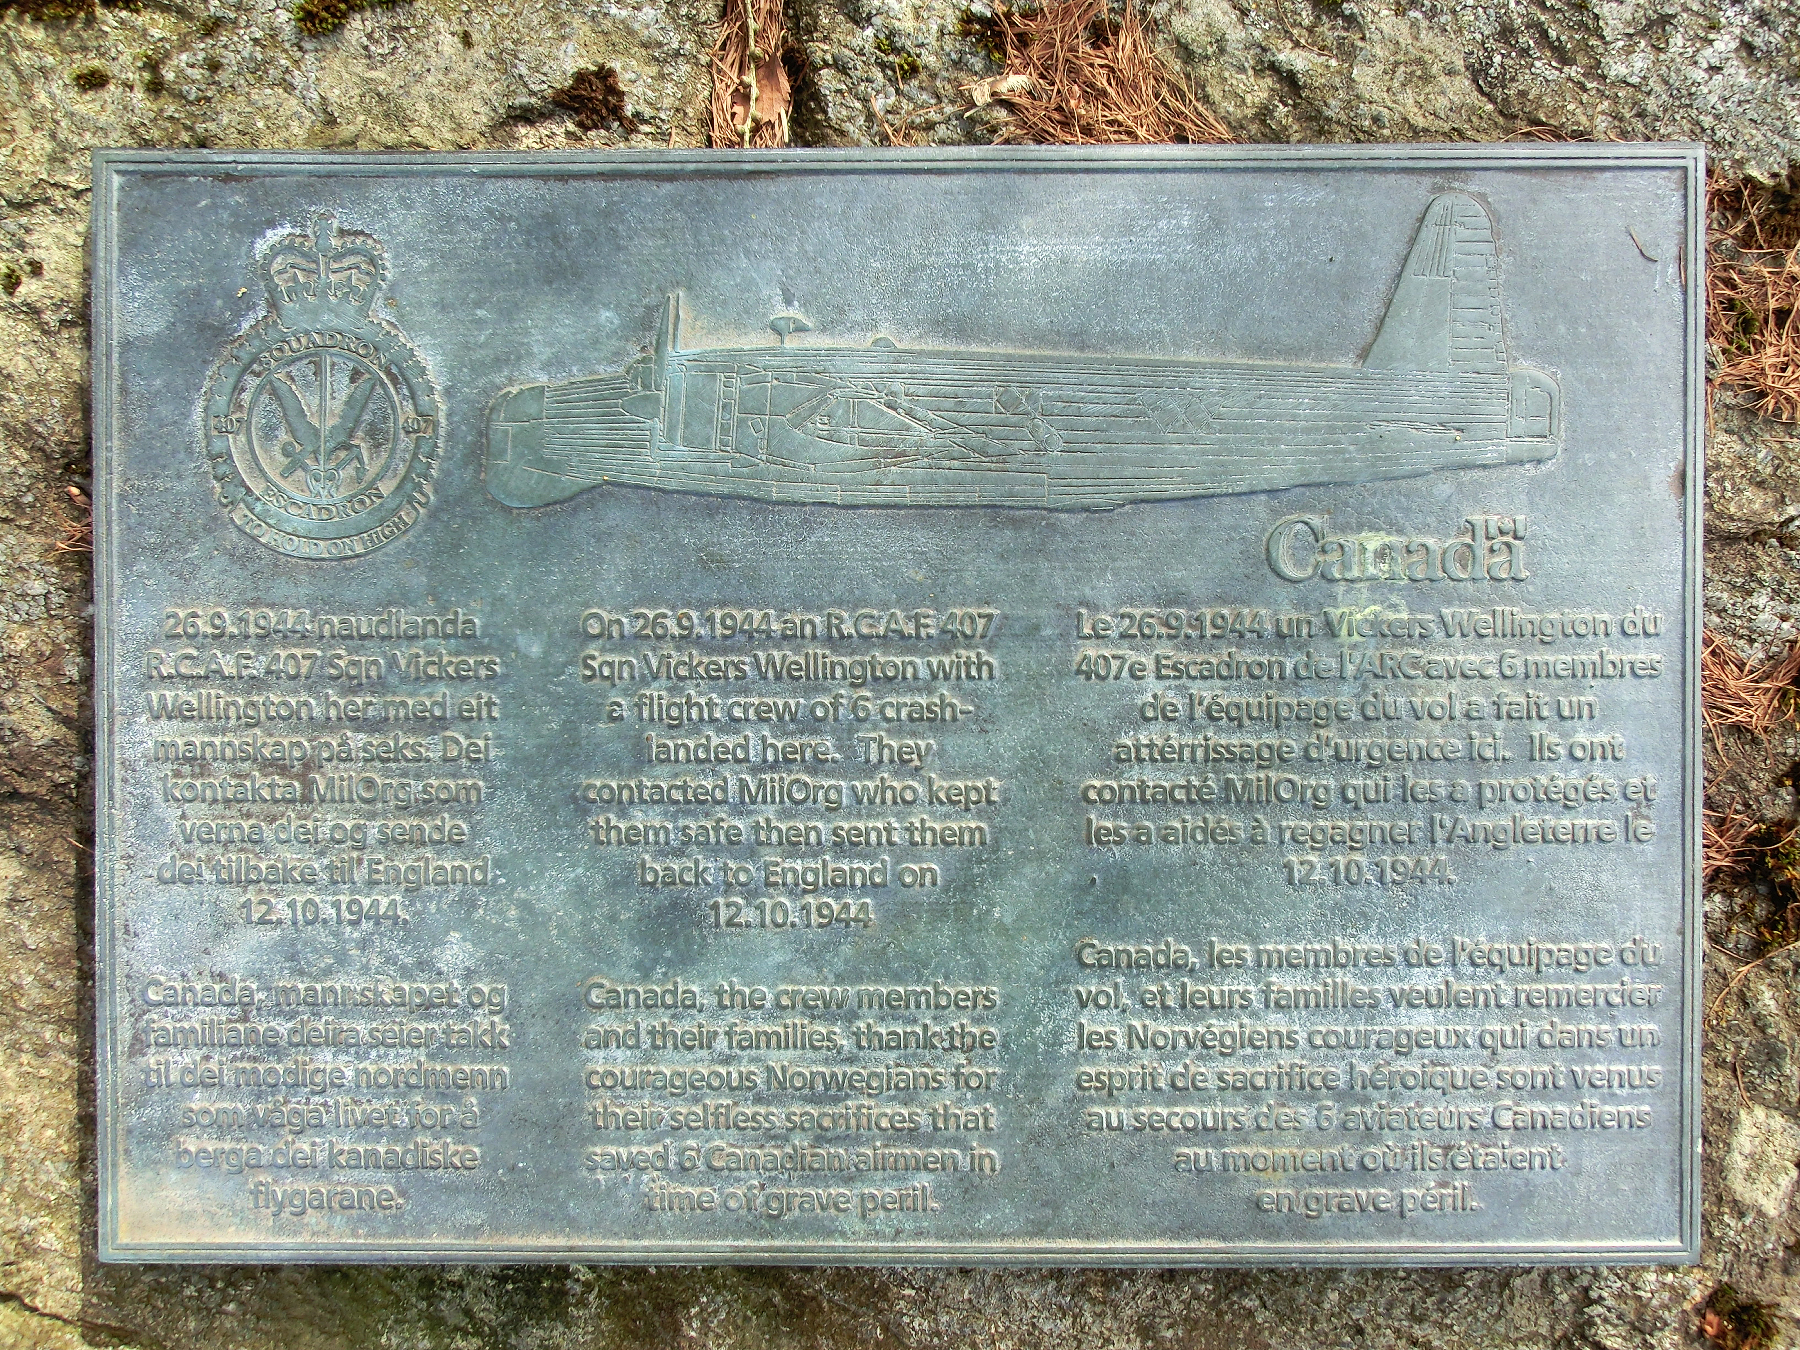 A brass plaque in Os, Norway, marks the events of early autumn 1944 in Norwegian, English and French. PHOTO: Submitted